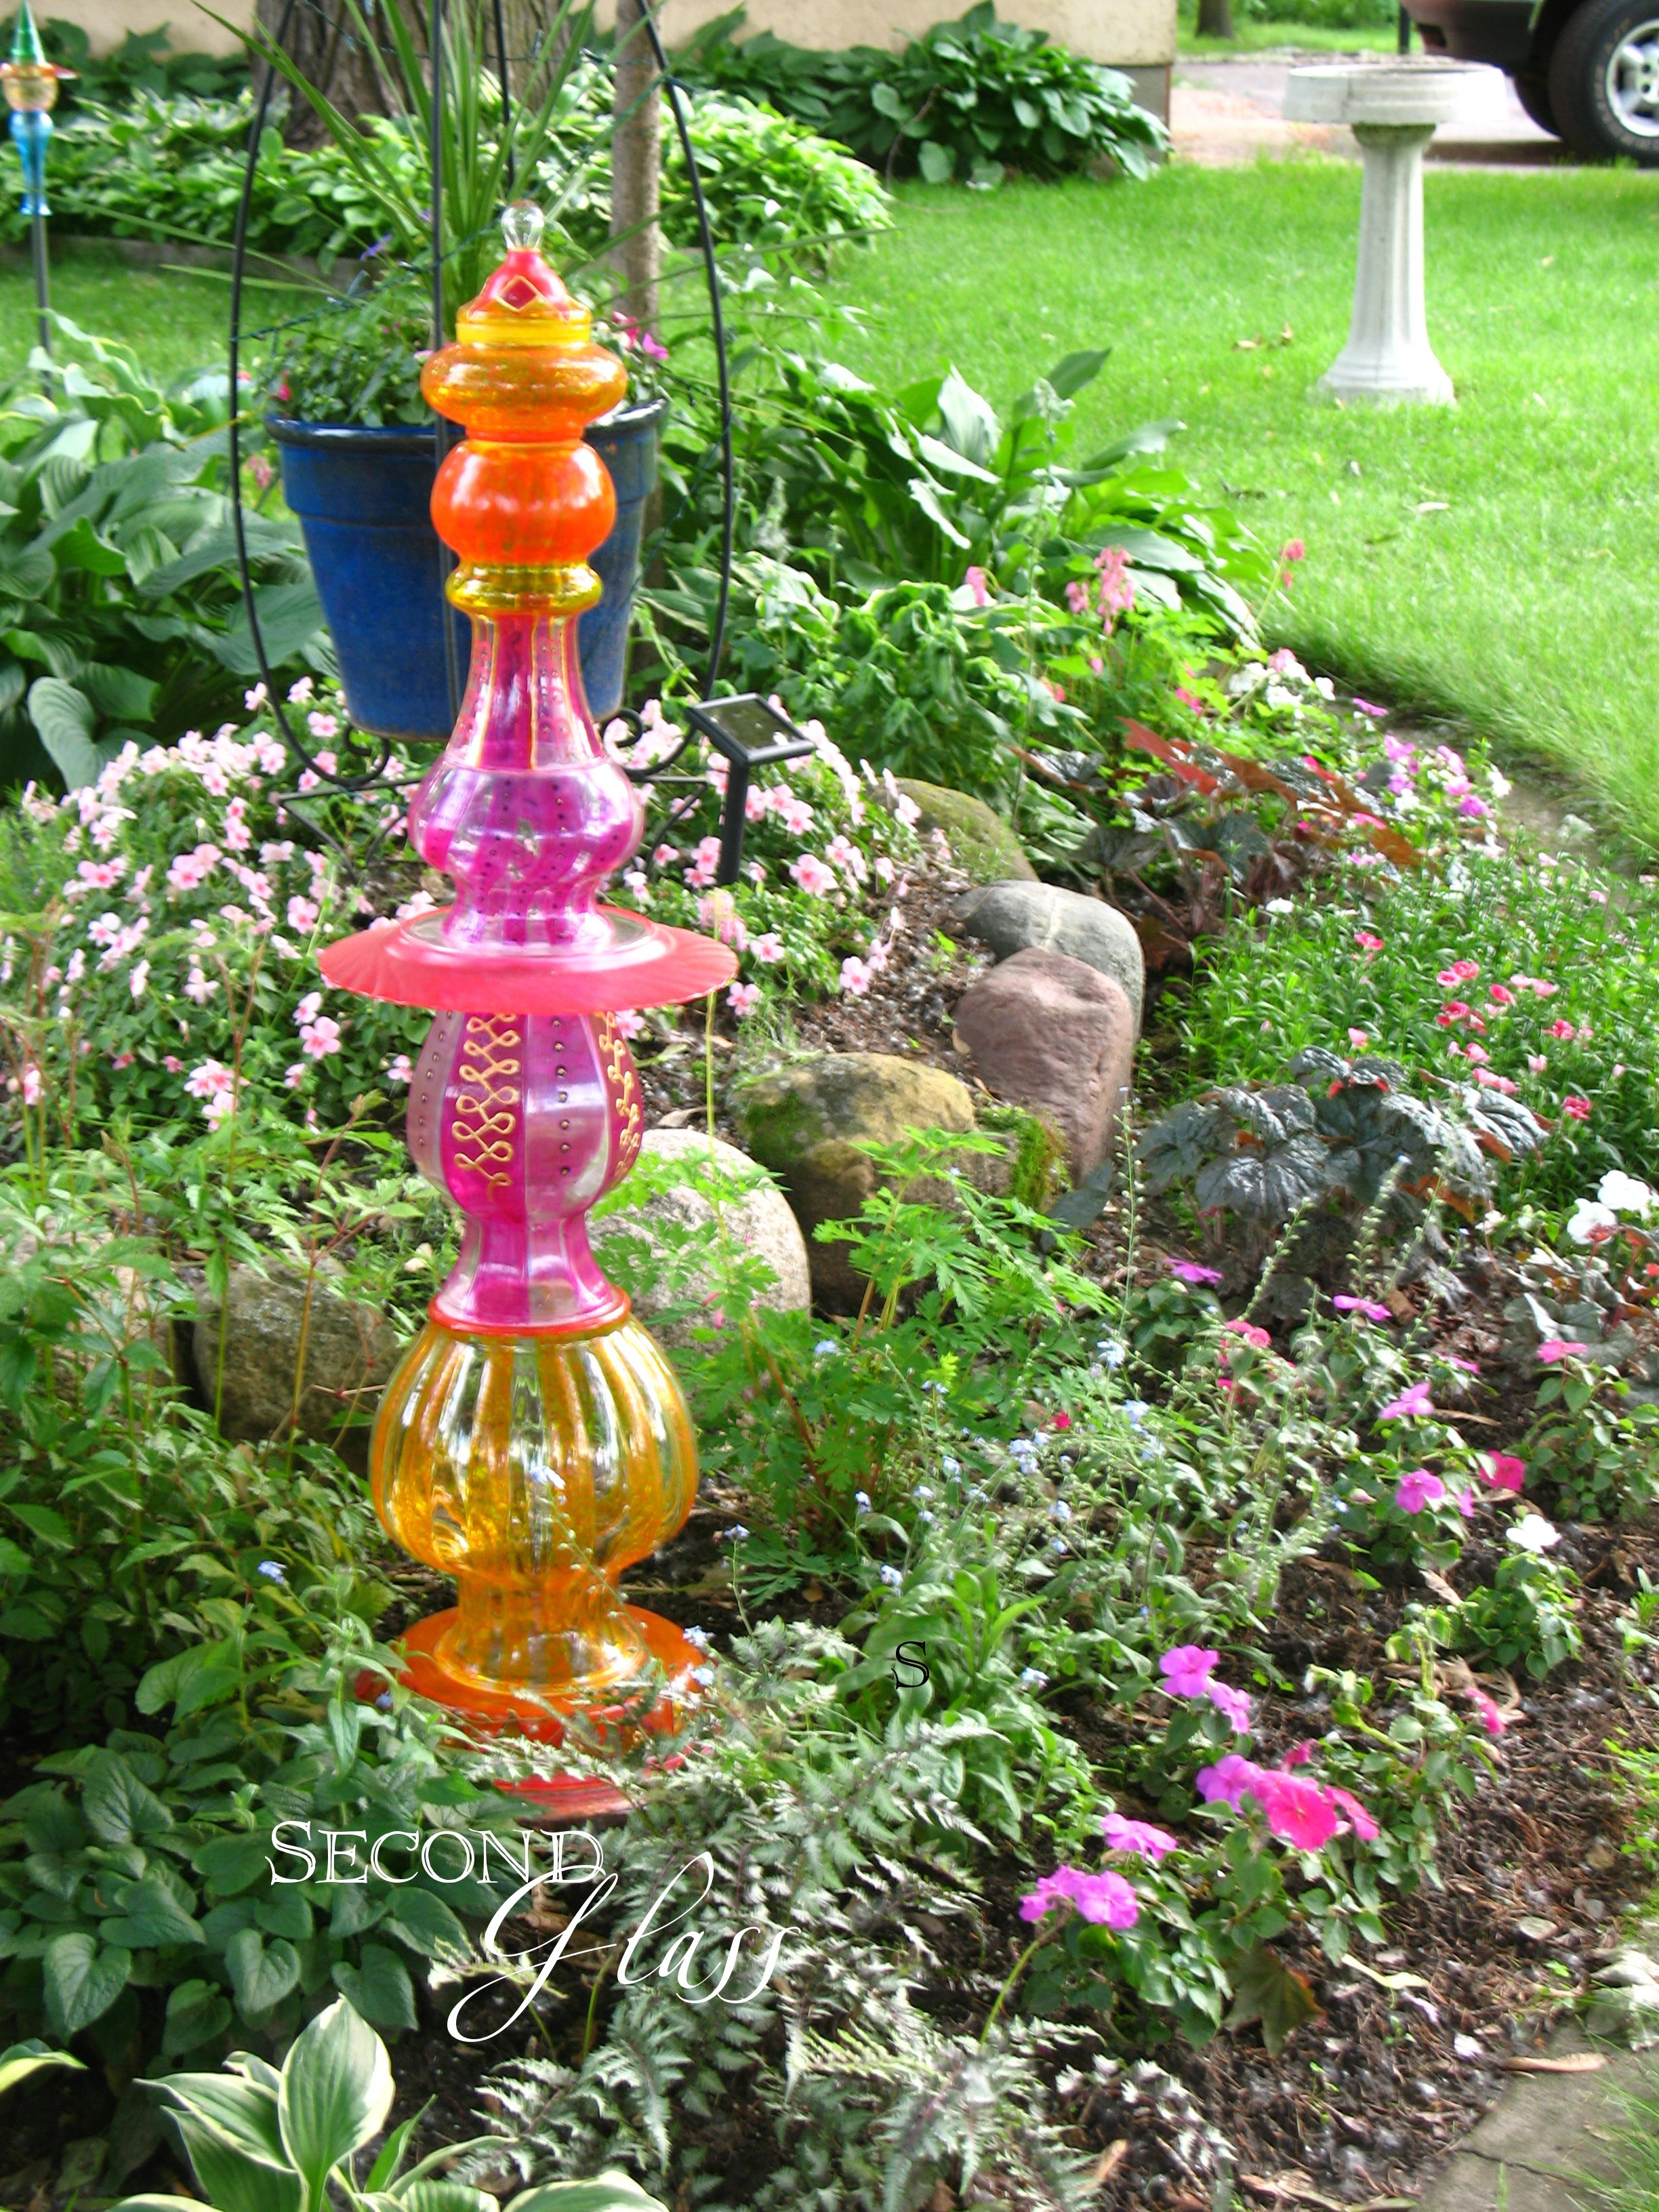 Glass yard art  Whimsical Hand Painted Glass Garden Totem by Second Glass